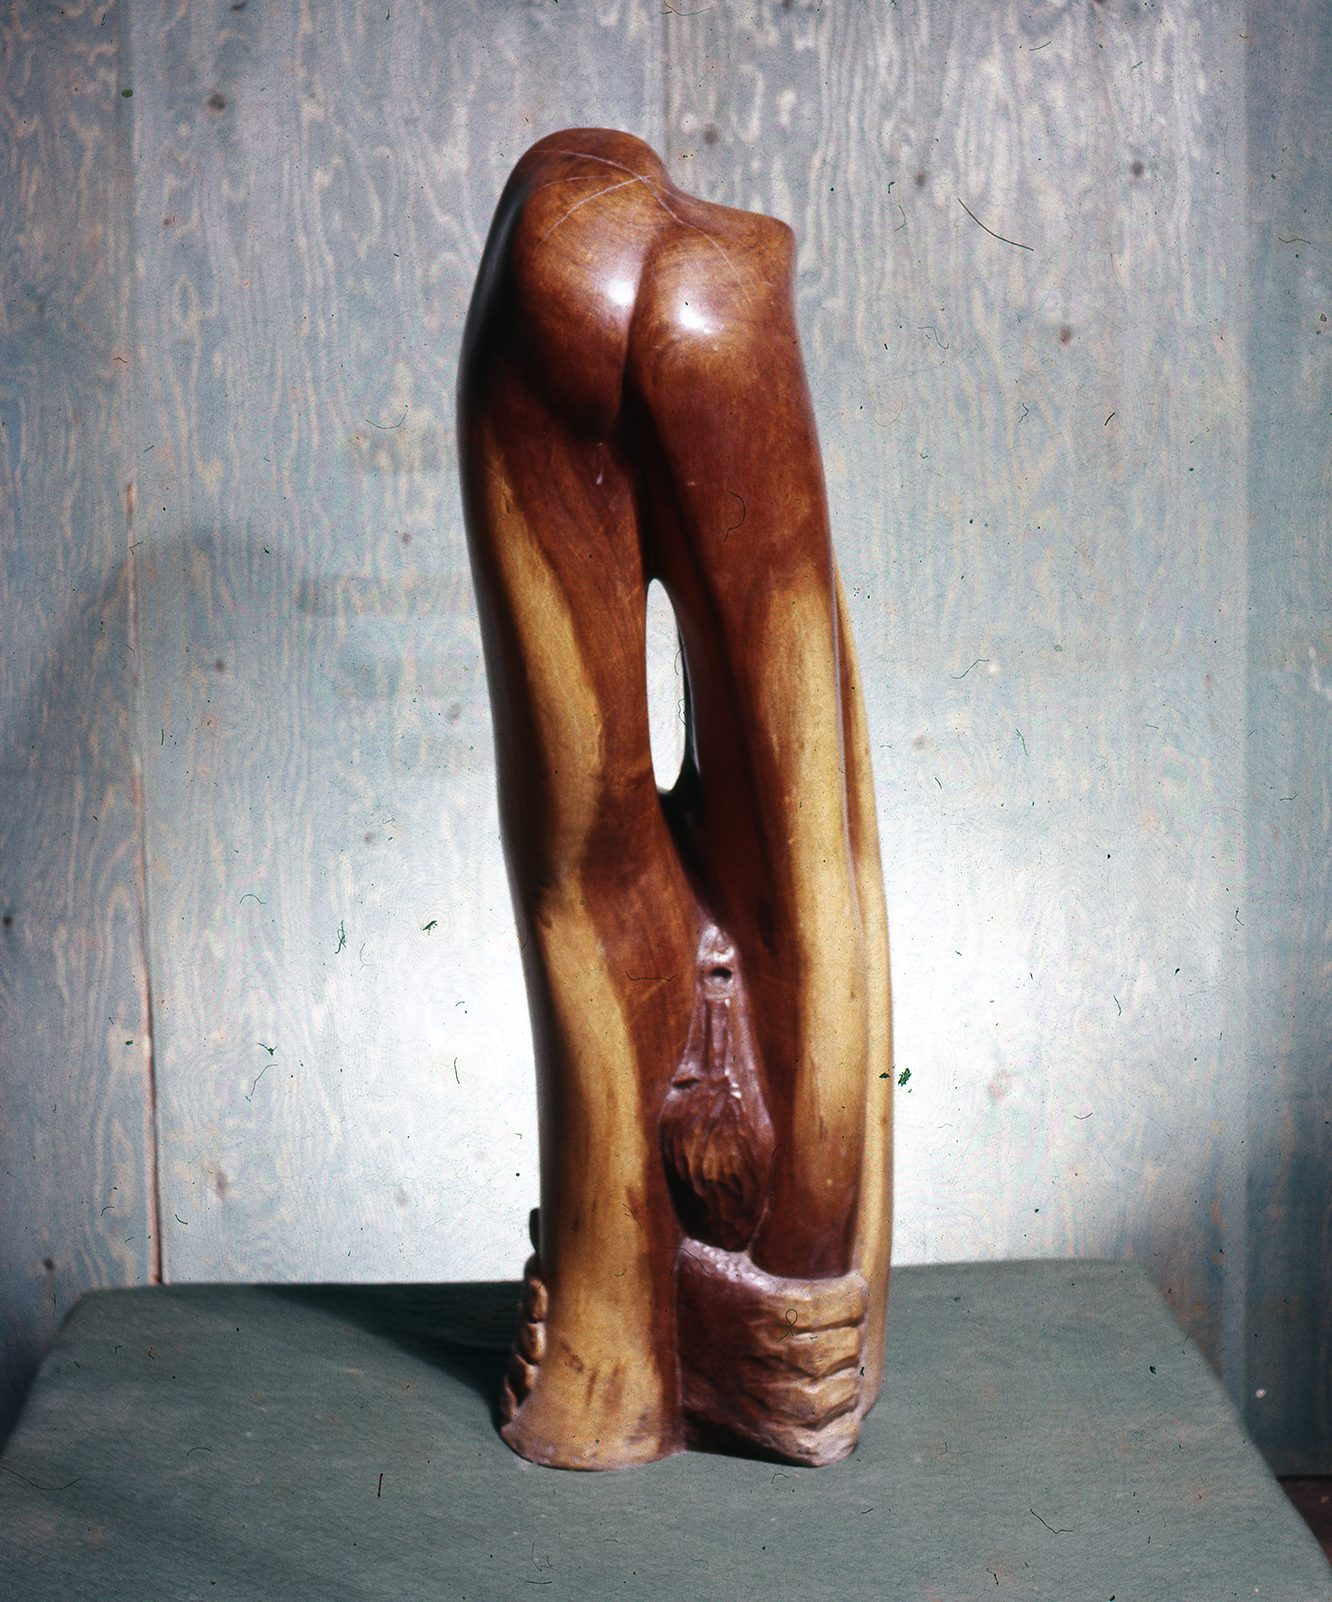 A smooth carved wooden figure